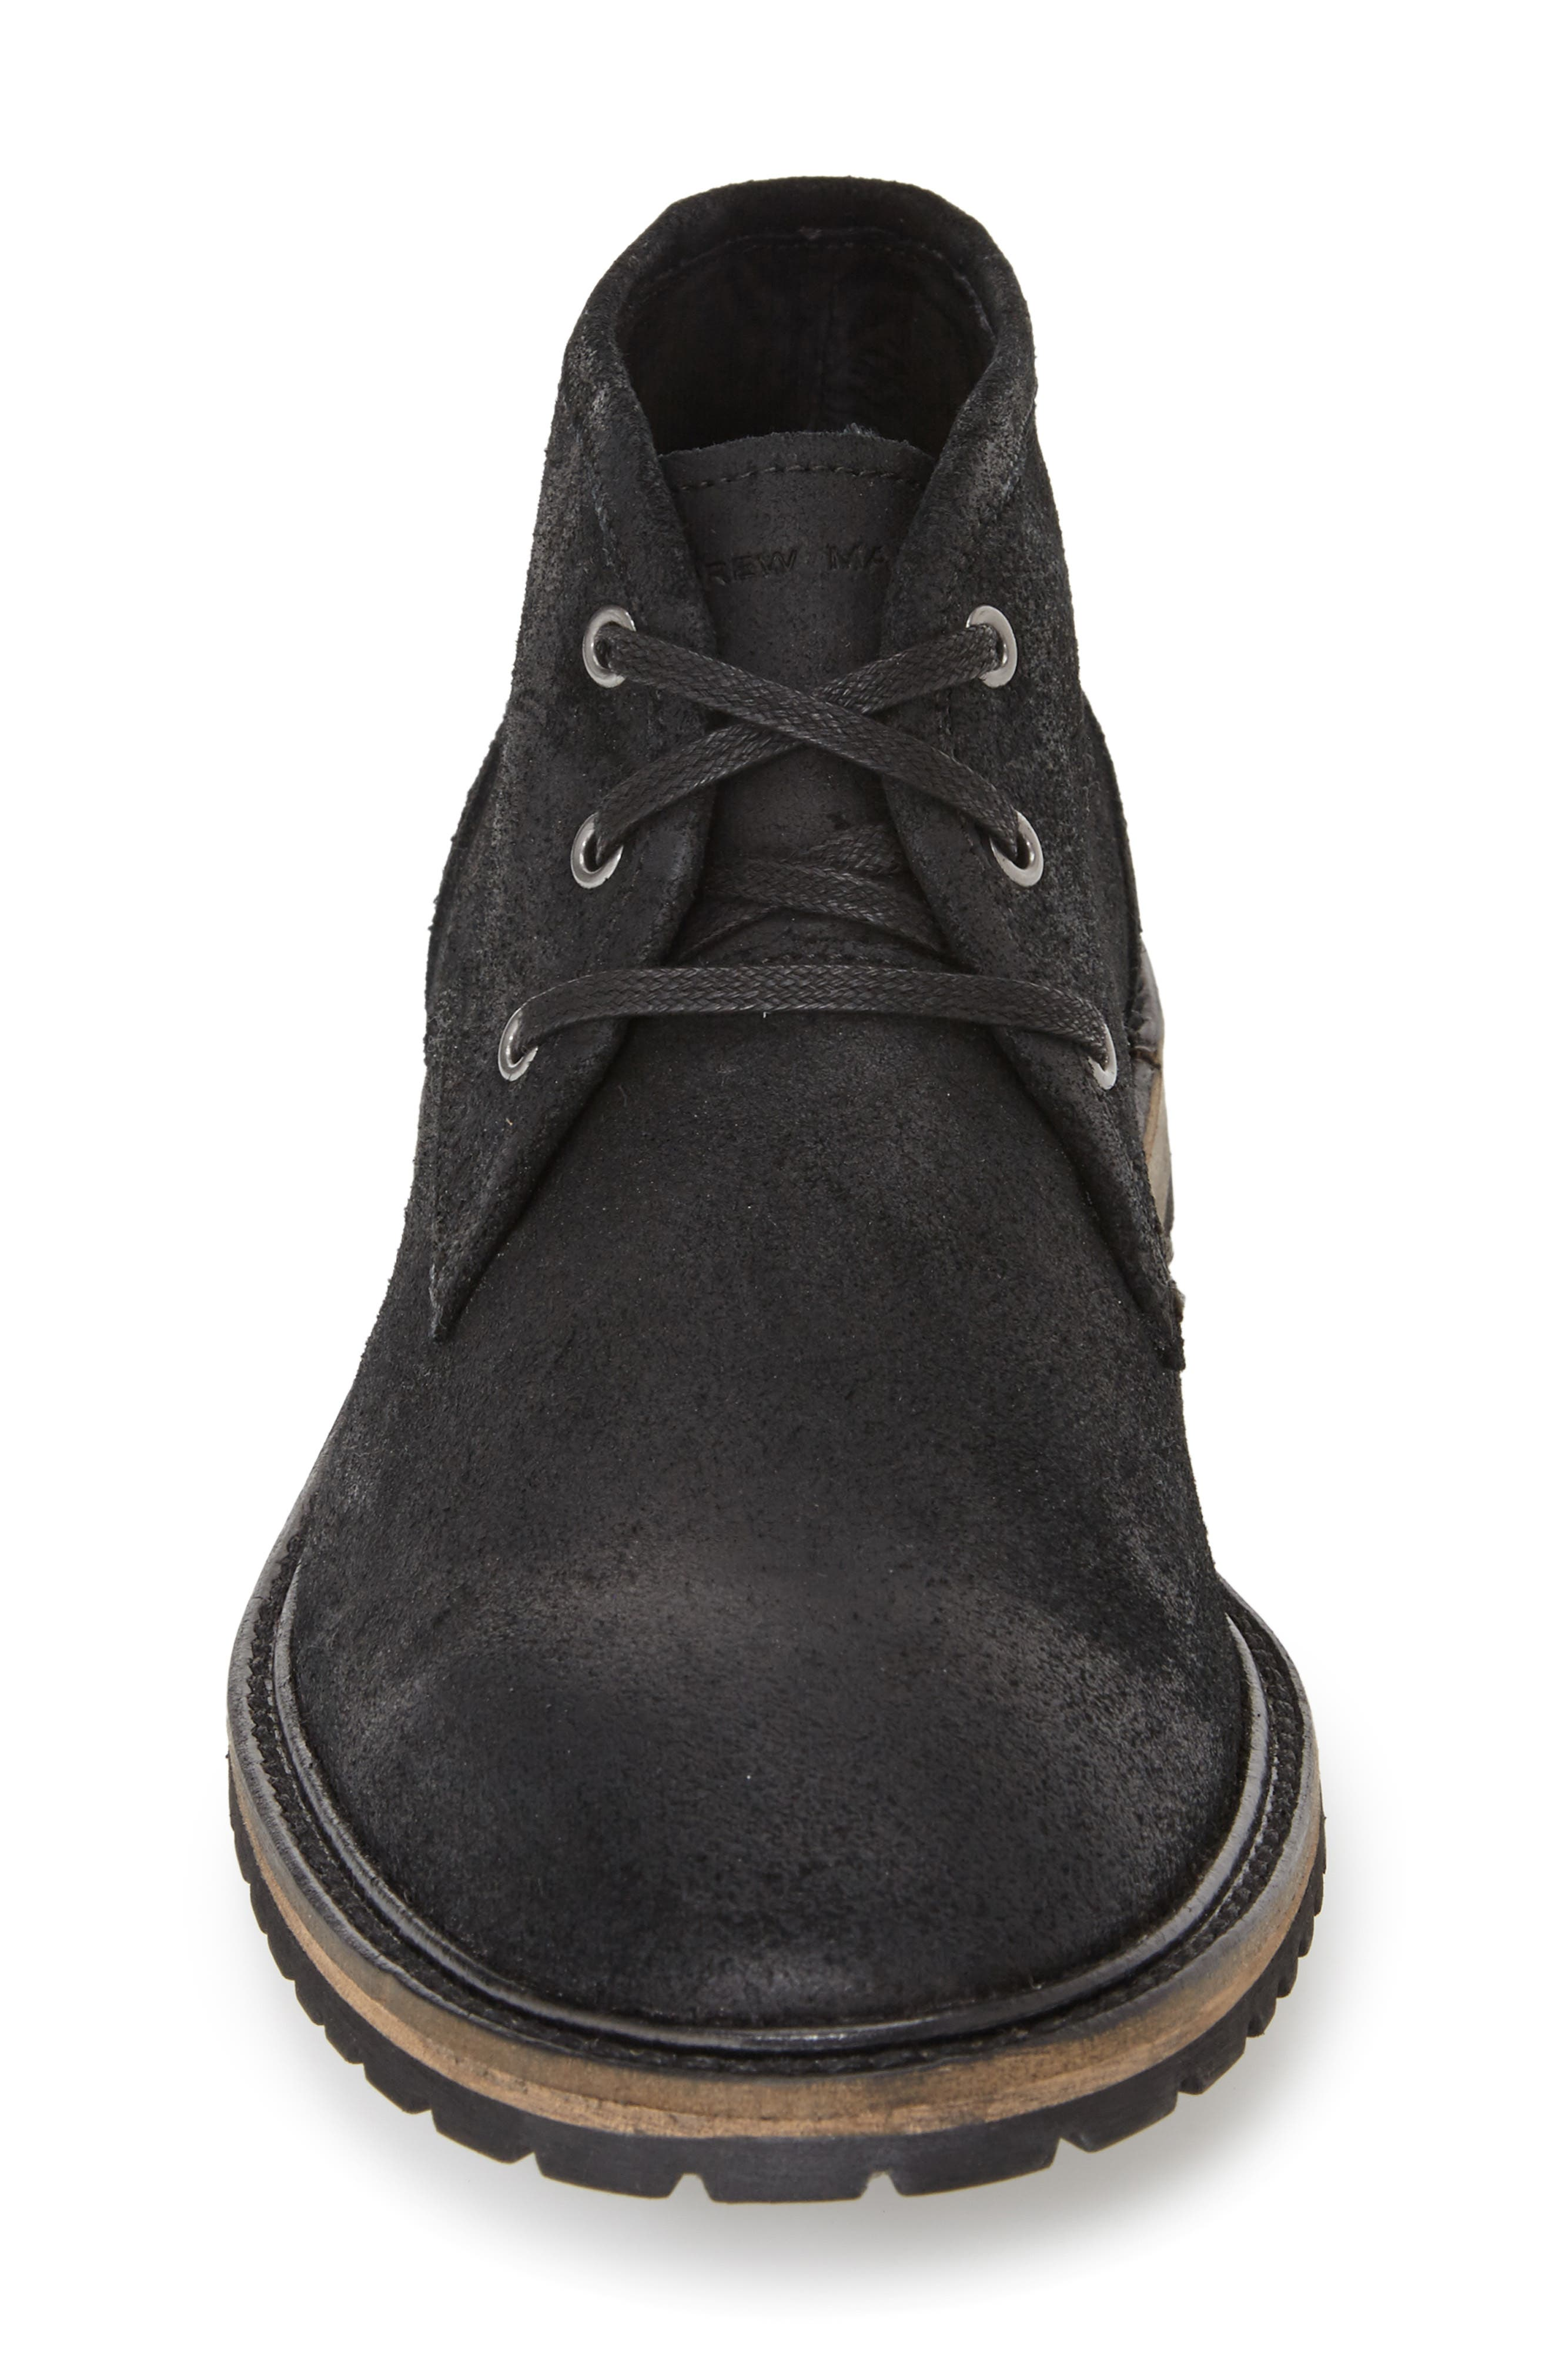 Woodside Chukka Boot,                             Alternate thumbnail 3, color,                             Black/ Deep Natural Suede